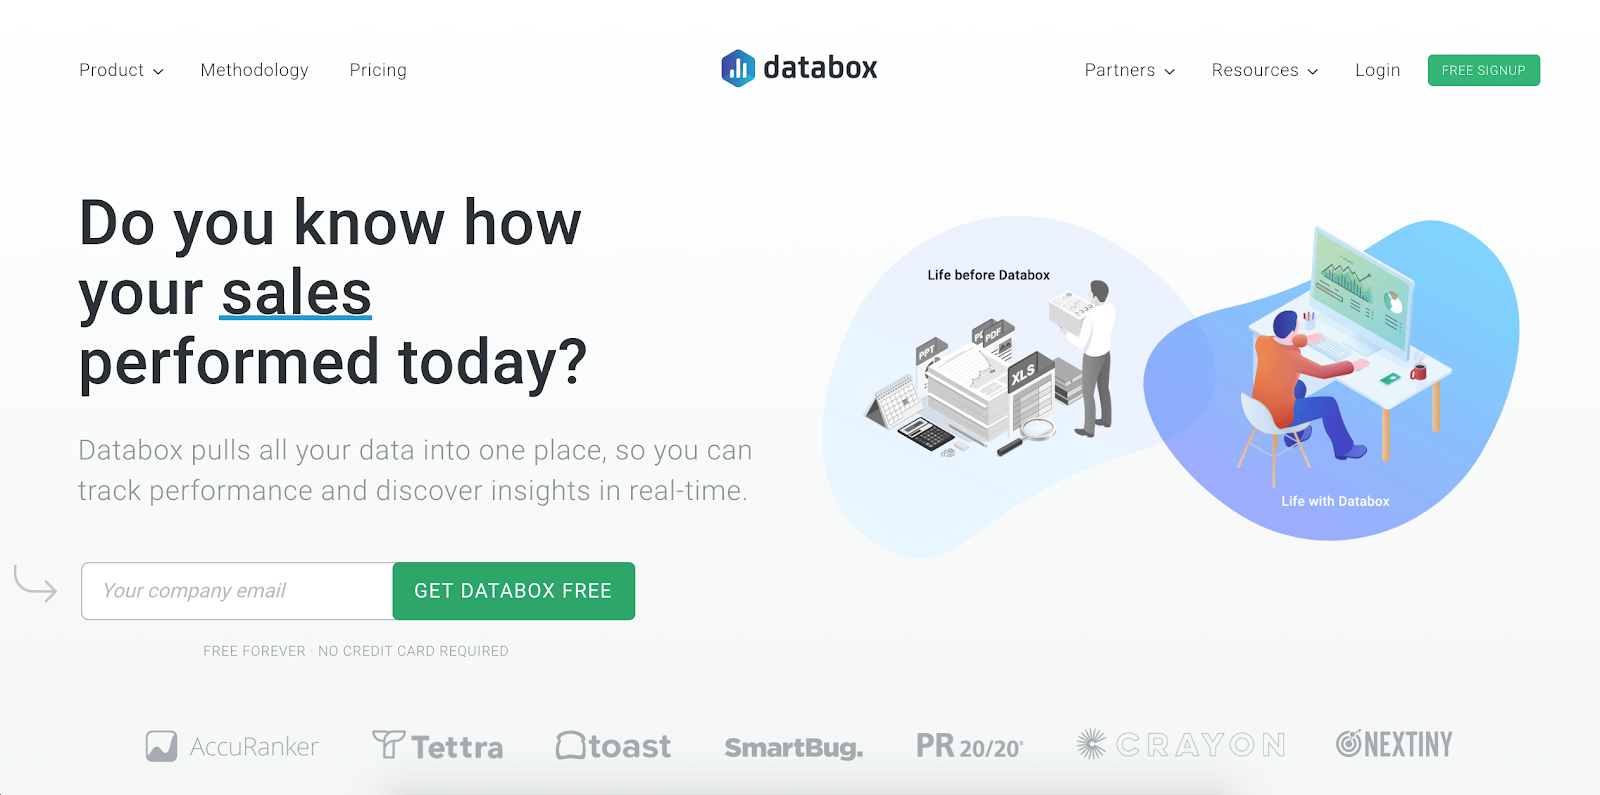 Top Marketing Tool Example #8 - Databox | 16 Powerful Marketing Tools You Haven't Considered (But Probably Should)